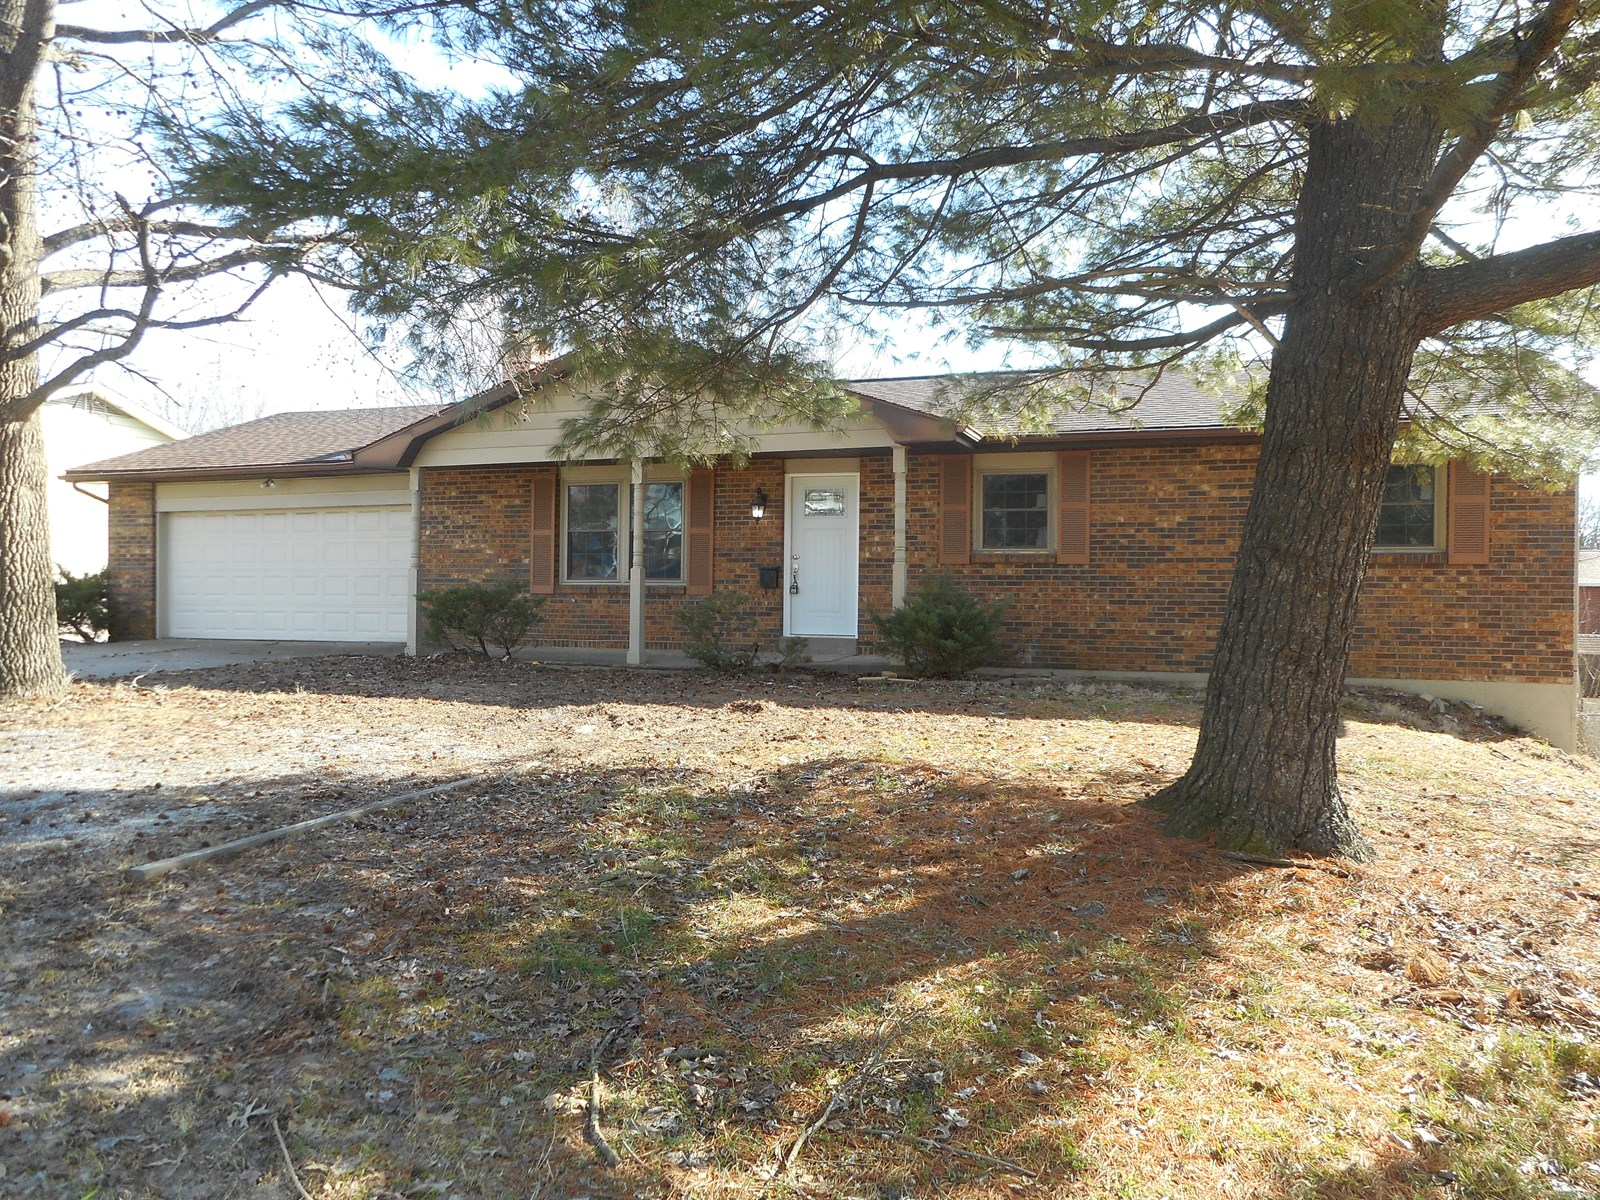 For Sale 3 Bedroom 2.5 Bath House in Cape Girardeau MO.